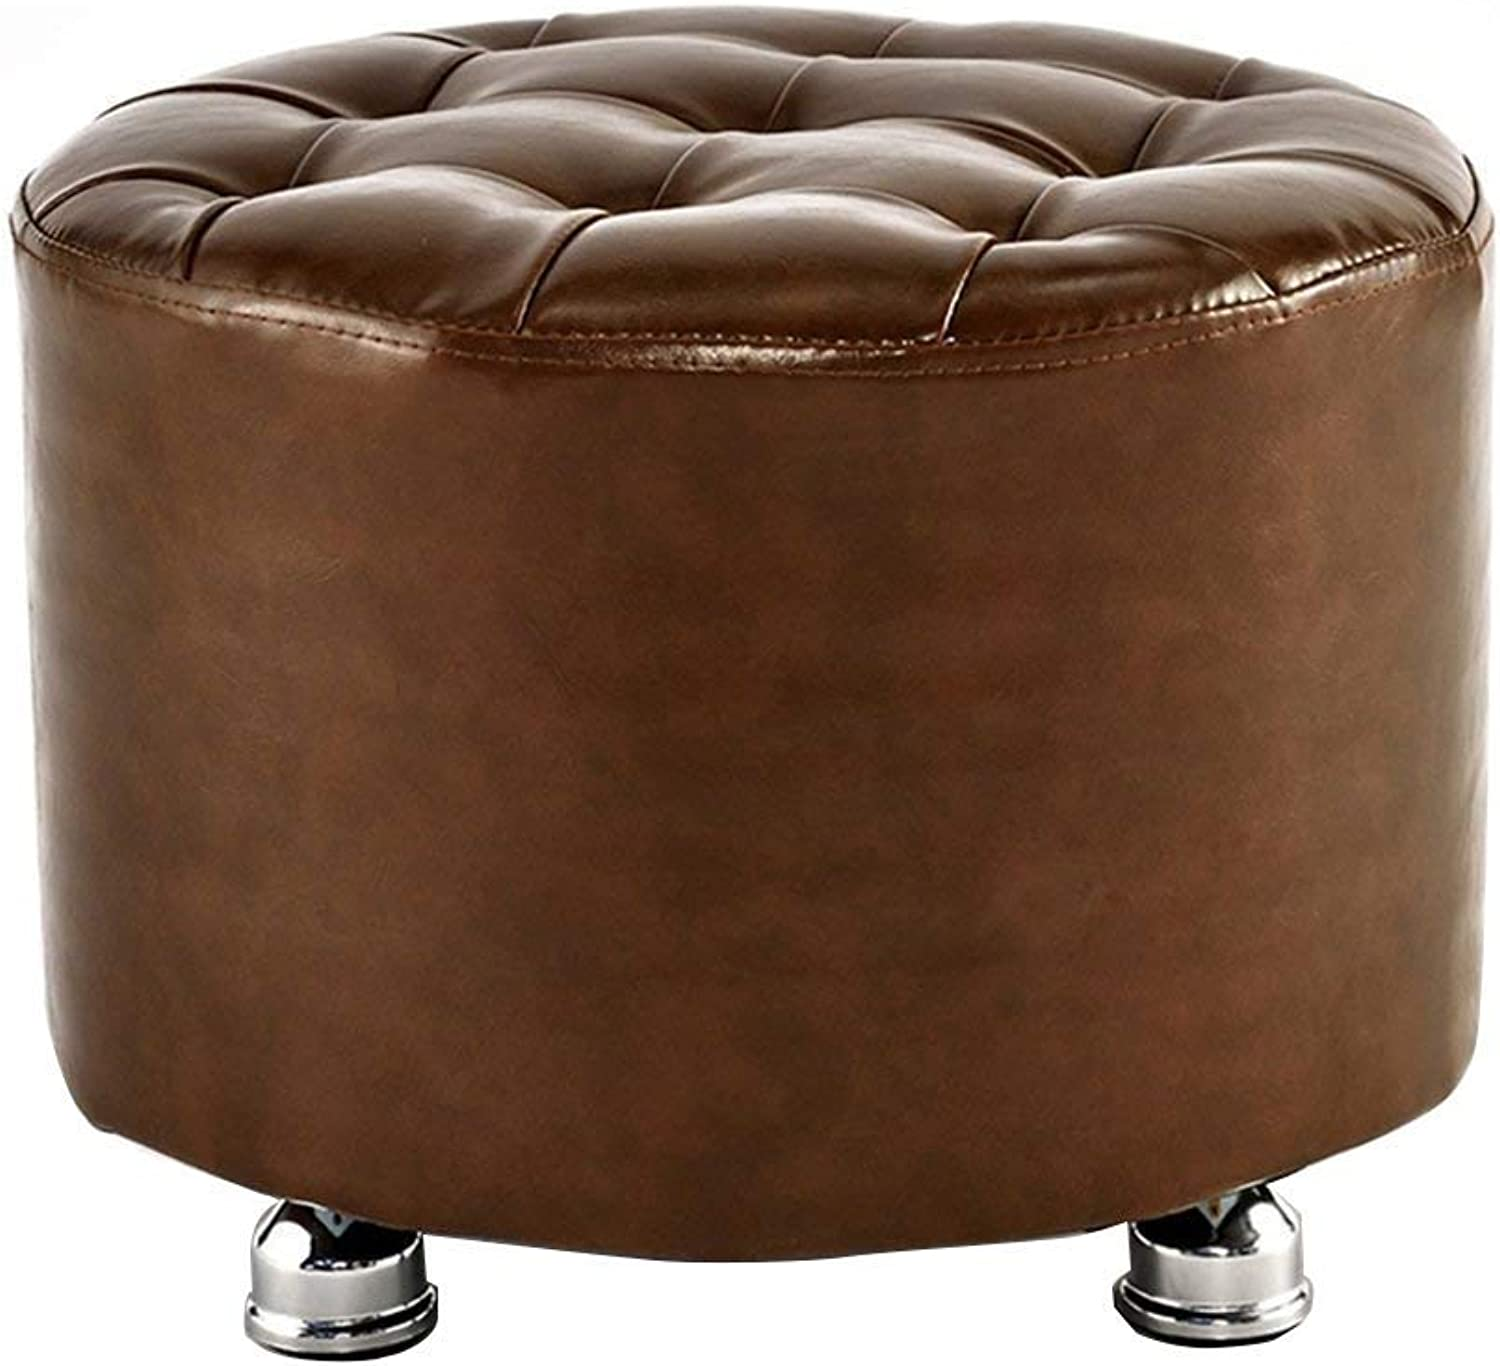 ChenDz Cute Stool Leather Stool Creative Sofa Stool Living Room Leather pier Small Bench Dressing Stool shoes Bench Solid Wood Stool seat Living Room Corridor Application (color   Coffee)